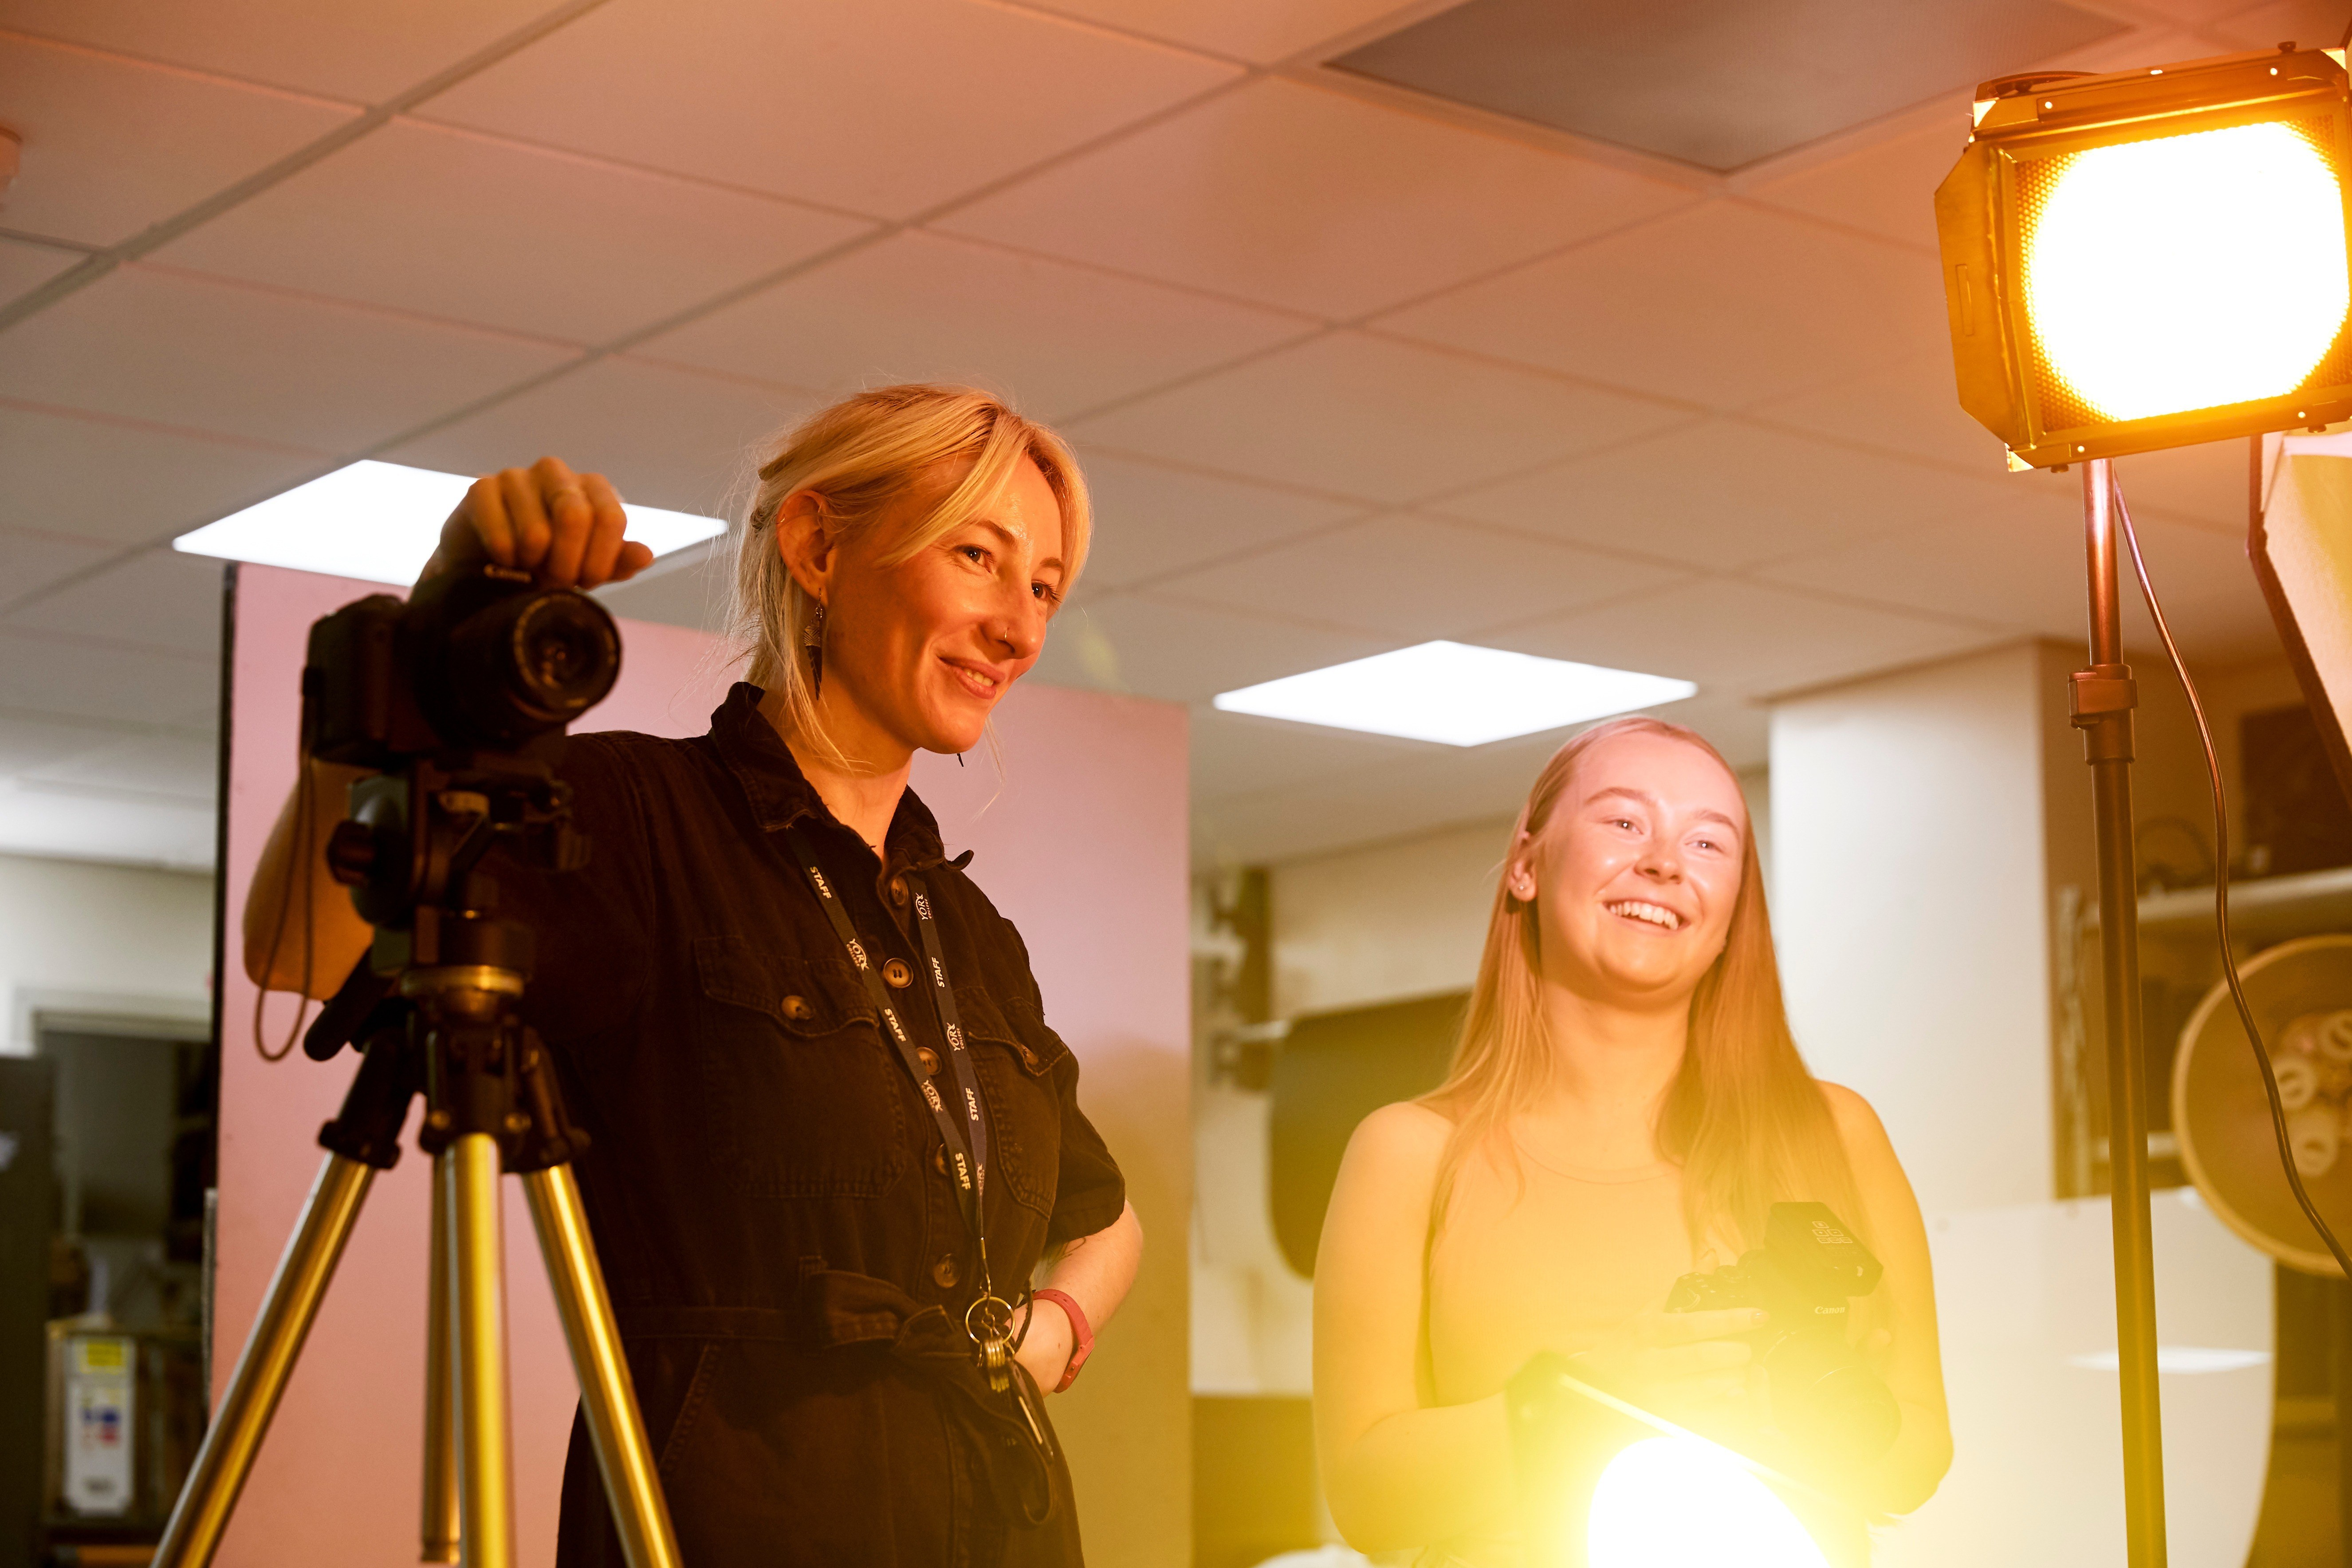 Clare Natress and student in photography room chatting